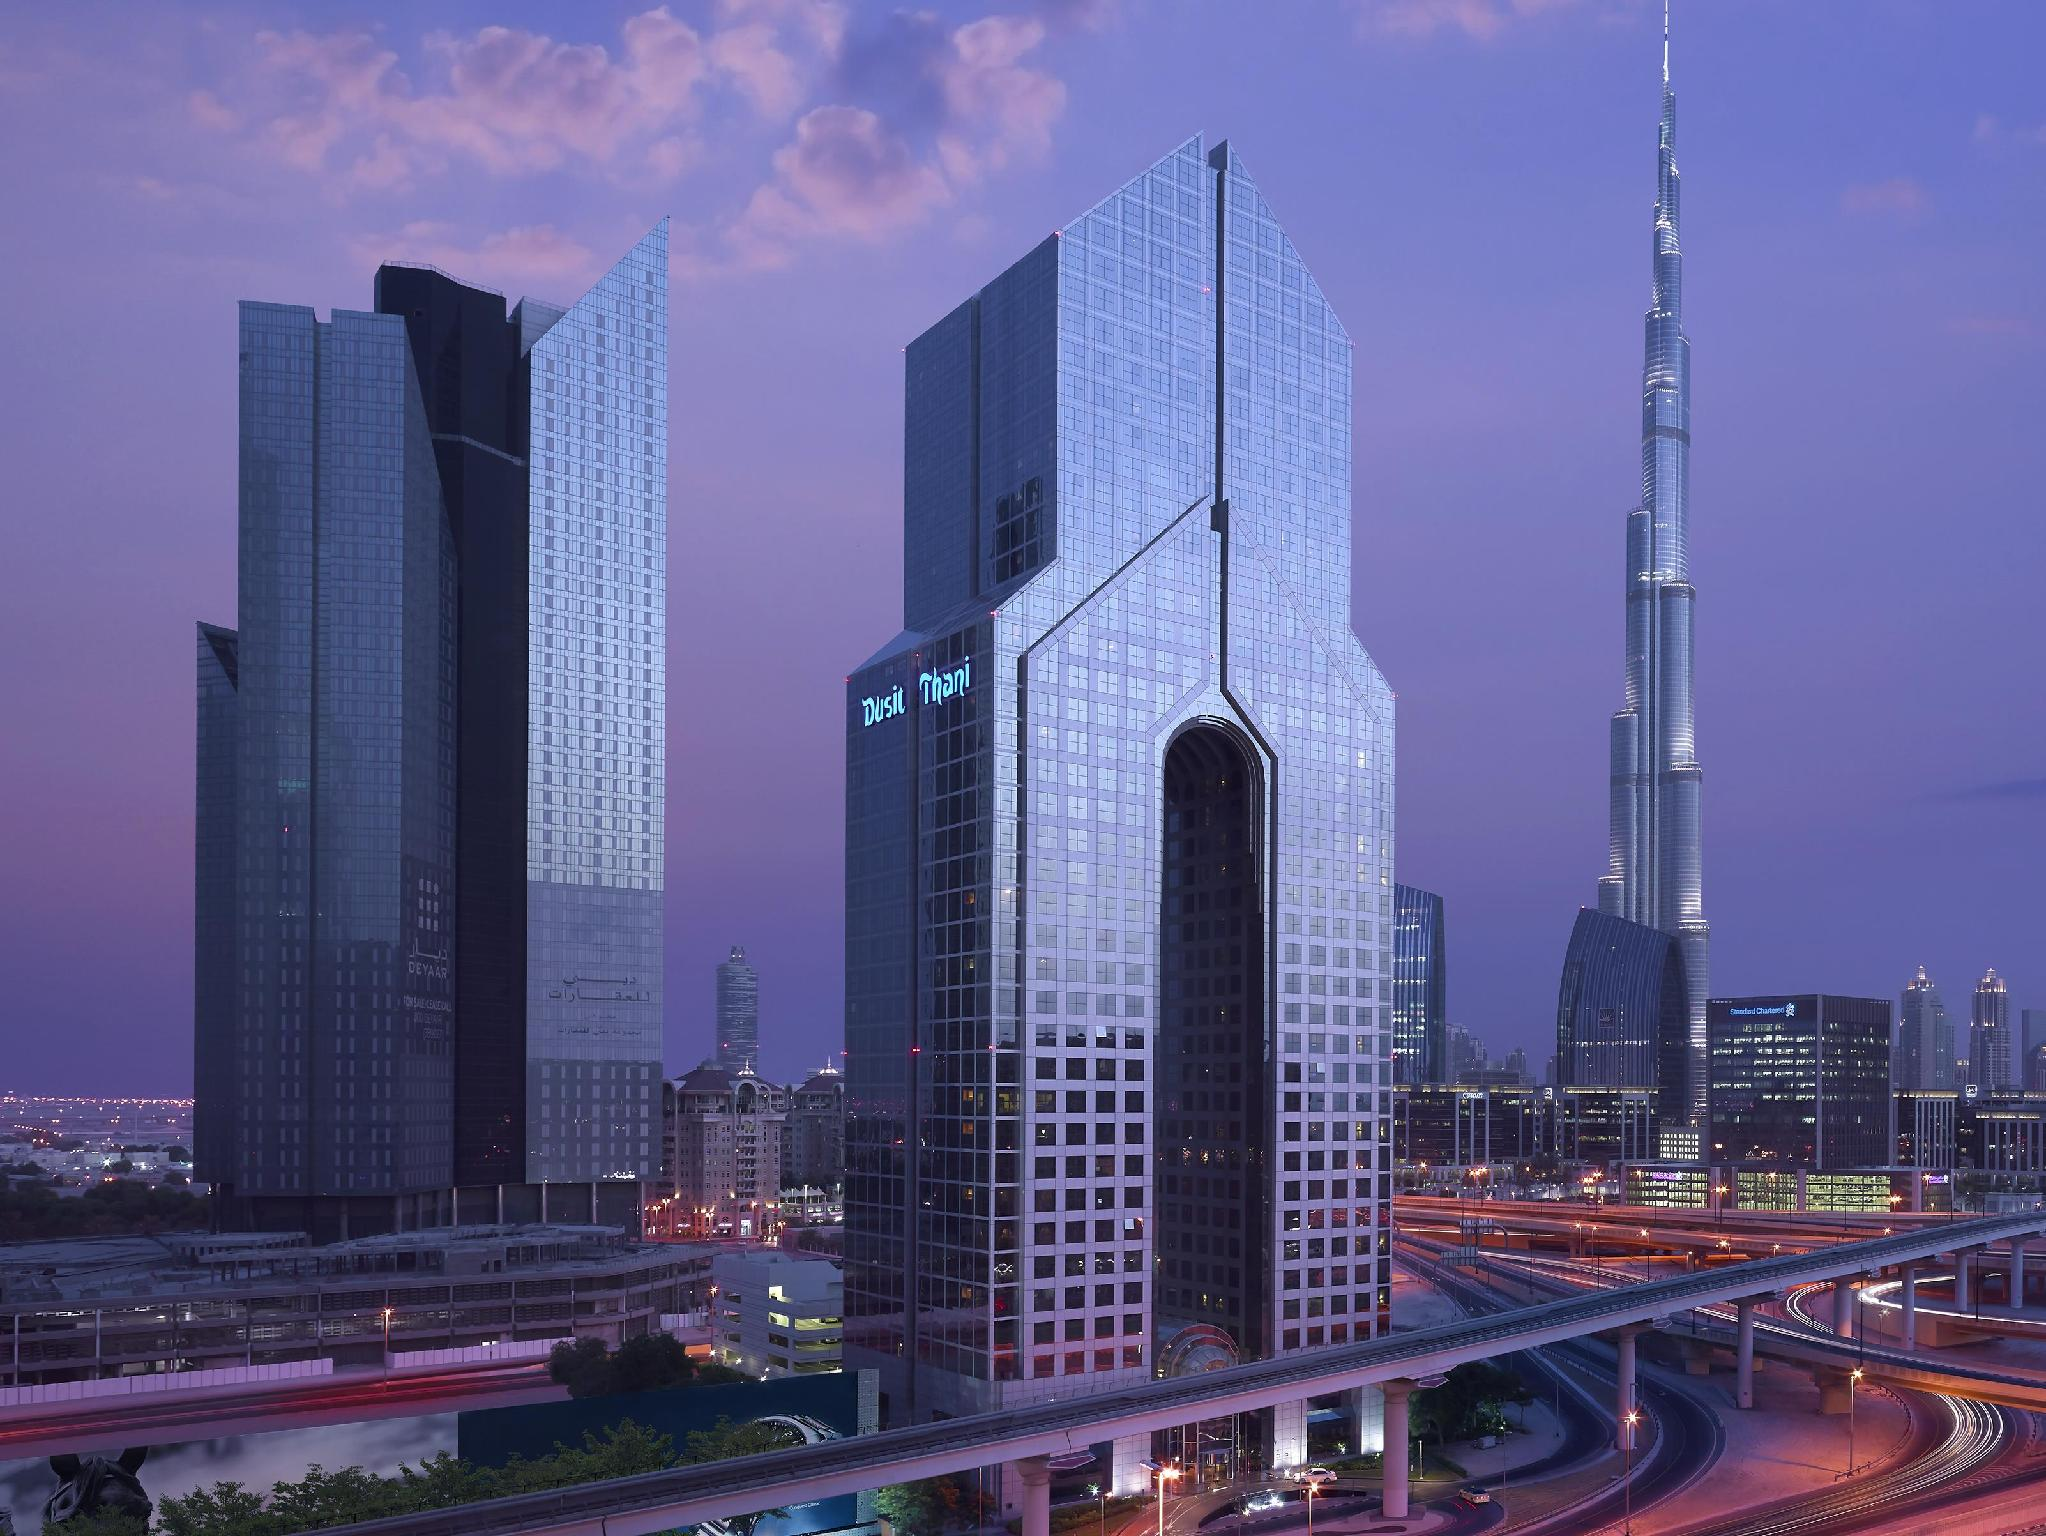 Dusit thani dubai hotel world trade centre difc dubai for Nice hotels in dubai